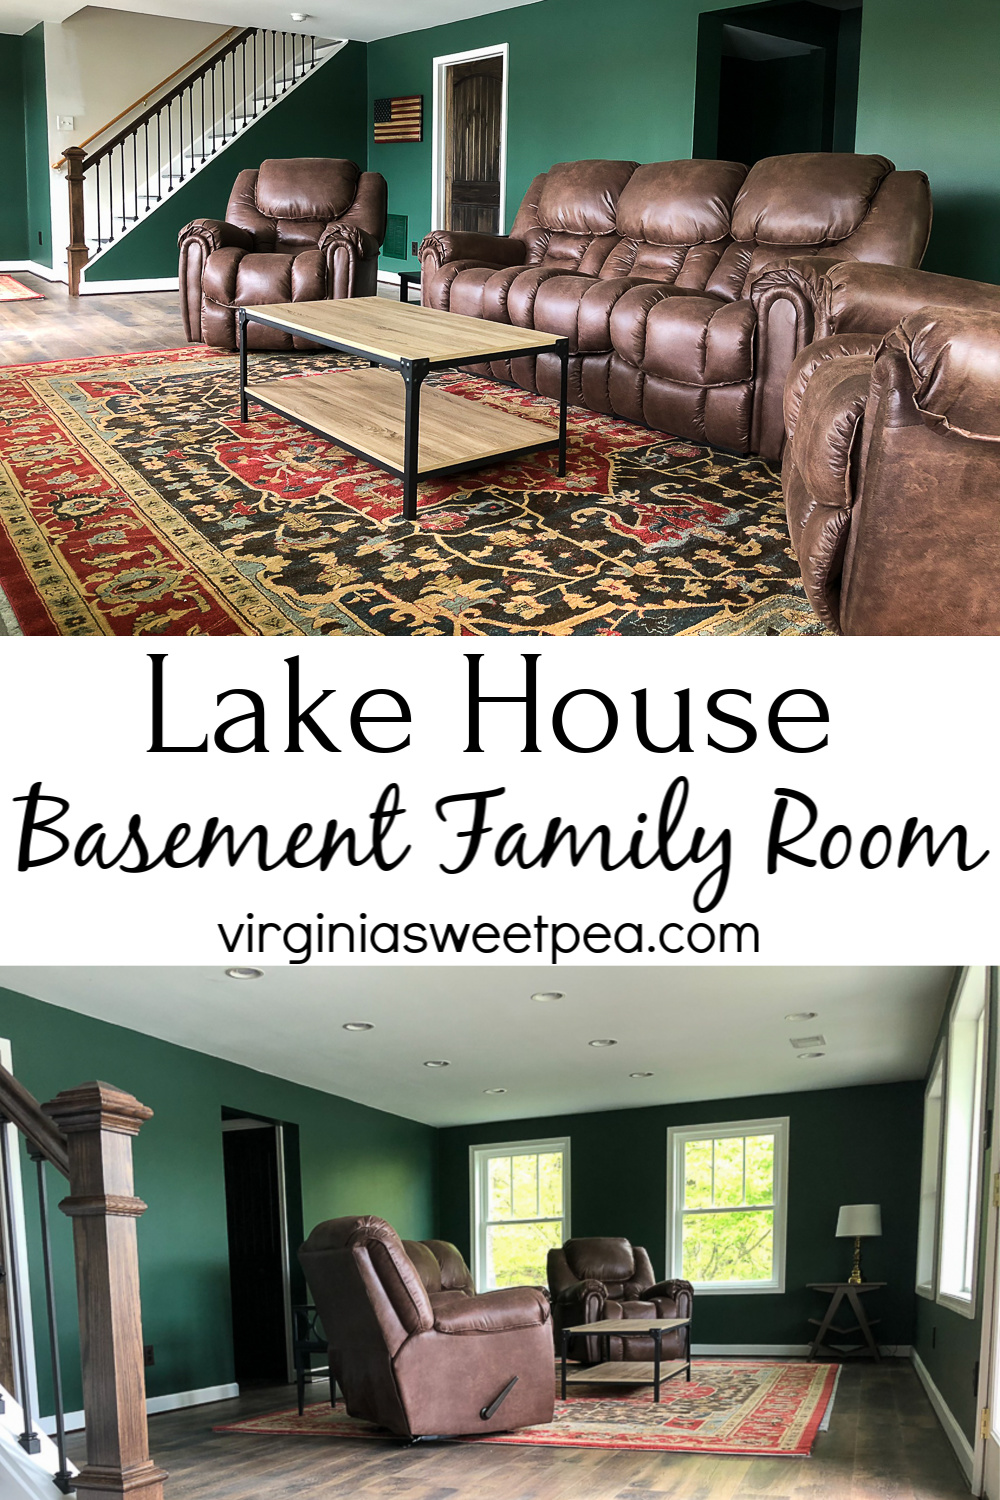 Lake House Basement Family Room - A previously unfinished basement has been transformed into a family room.  See all of the detail of the project as well as the room's decor.   #lakehouse #lakehousebasement #lakehousefamilyroom via @spaula